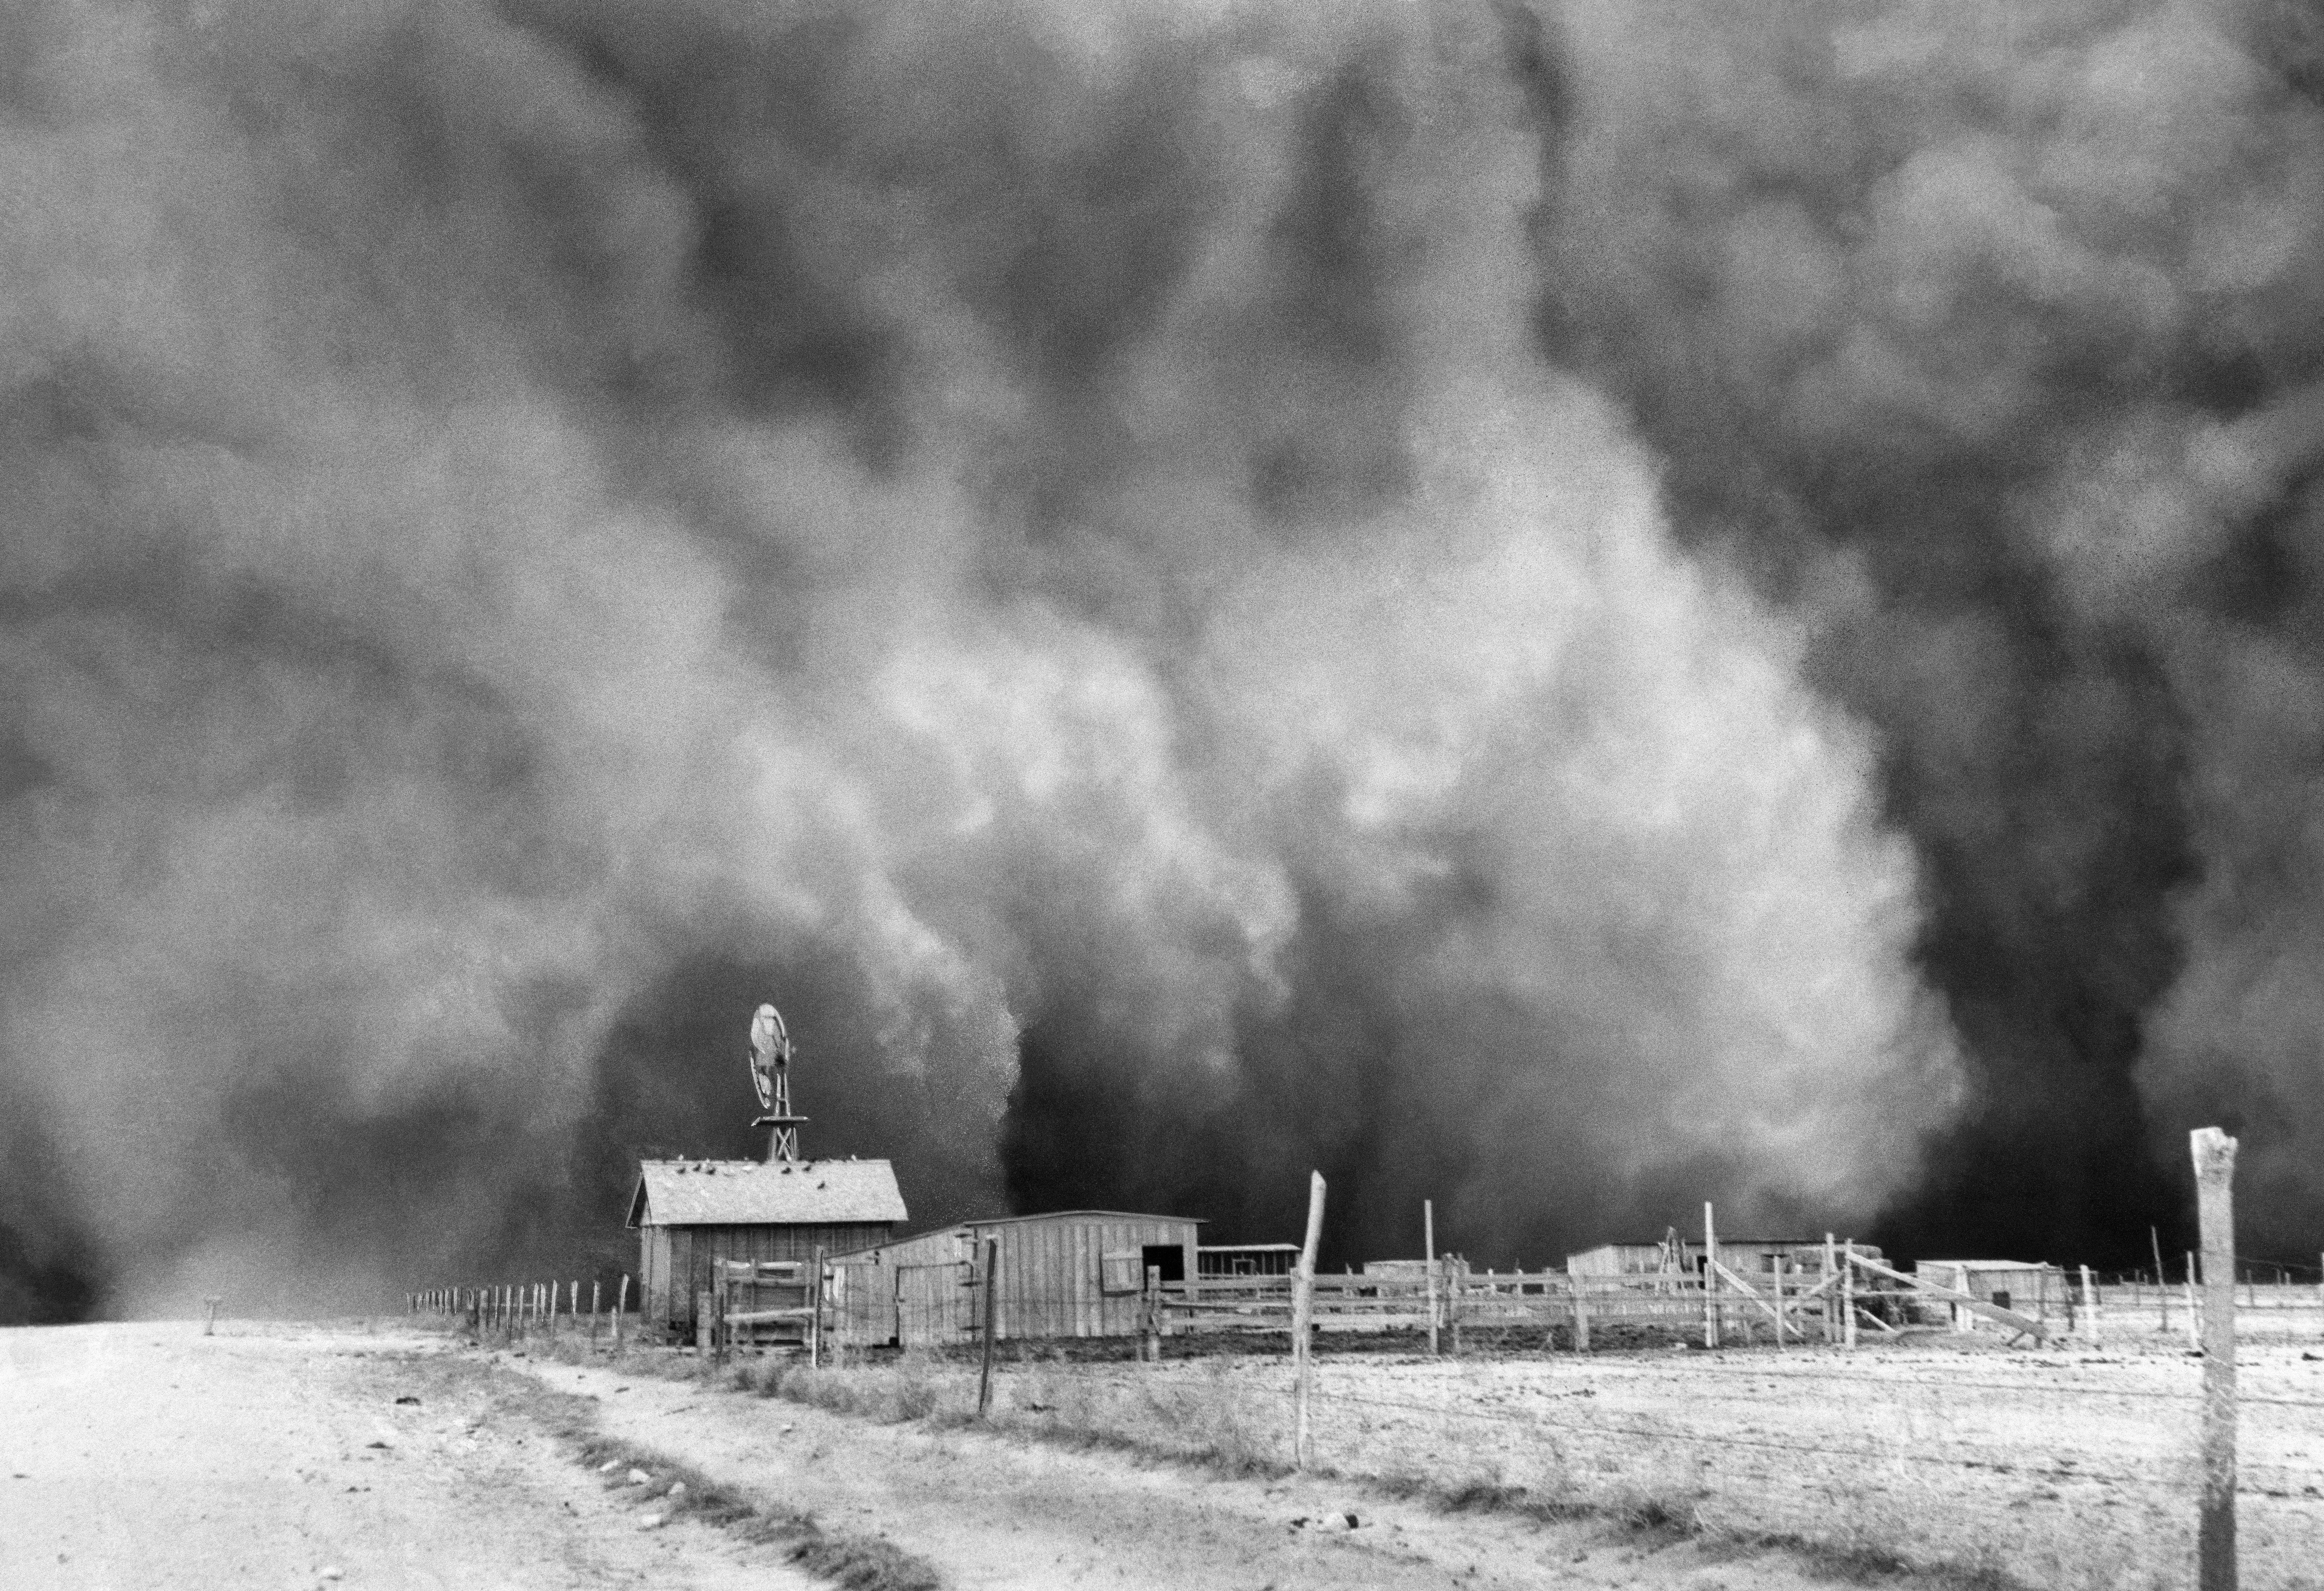 What we learned from the Dust Bowl: lessons in science ...